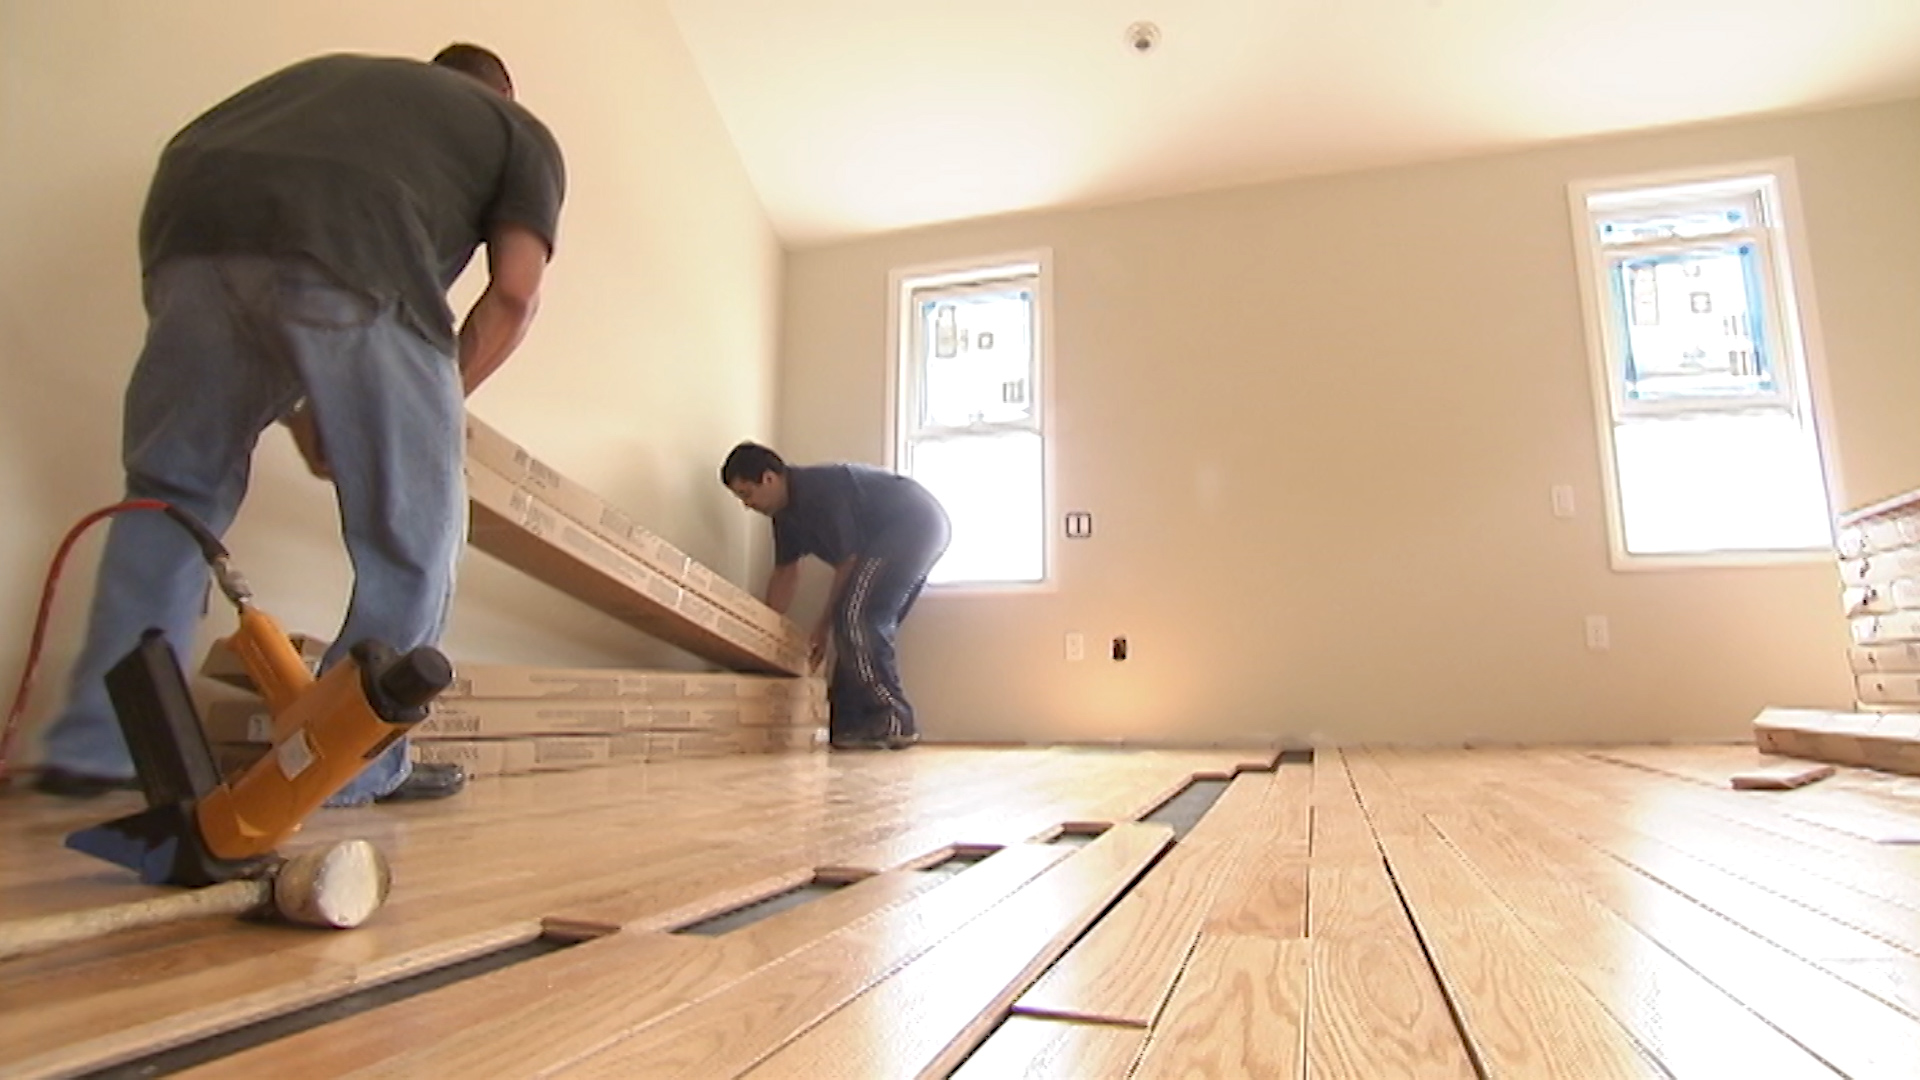 Formaldehyde Laminate Flooring some laminate floors emit formaldehyde consumer reports ctv news winnipeg Breathe Easier About Your Flooring Formaldehyde Consumer Reports